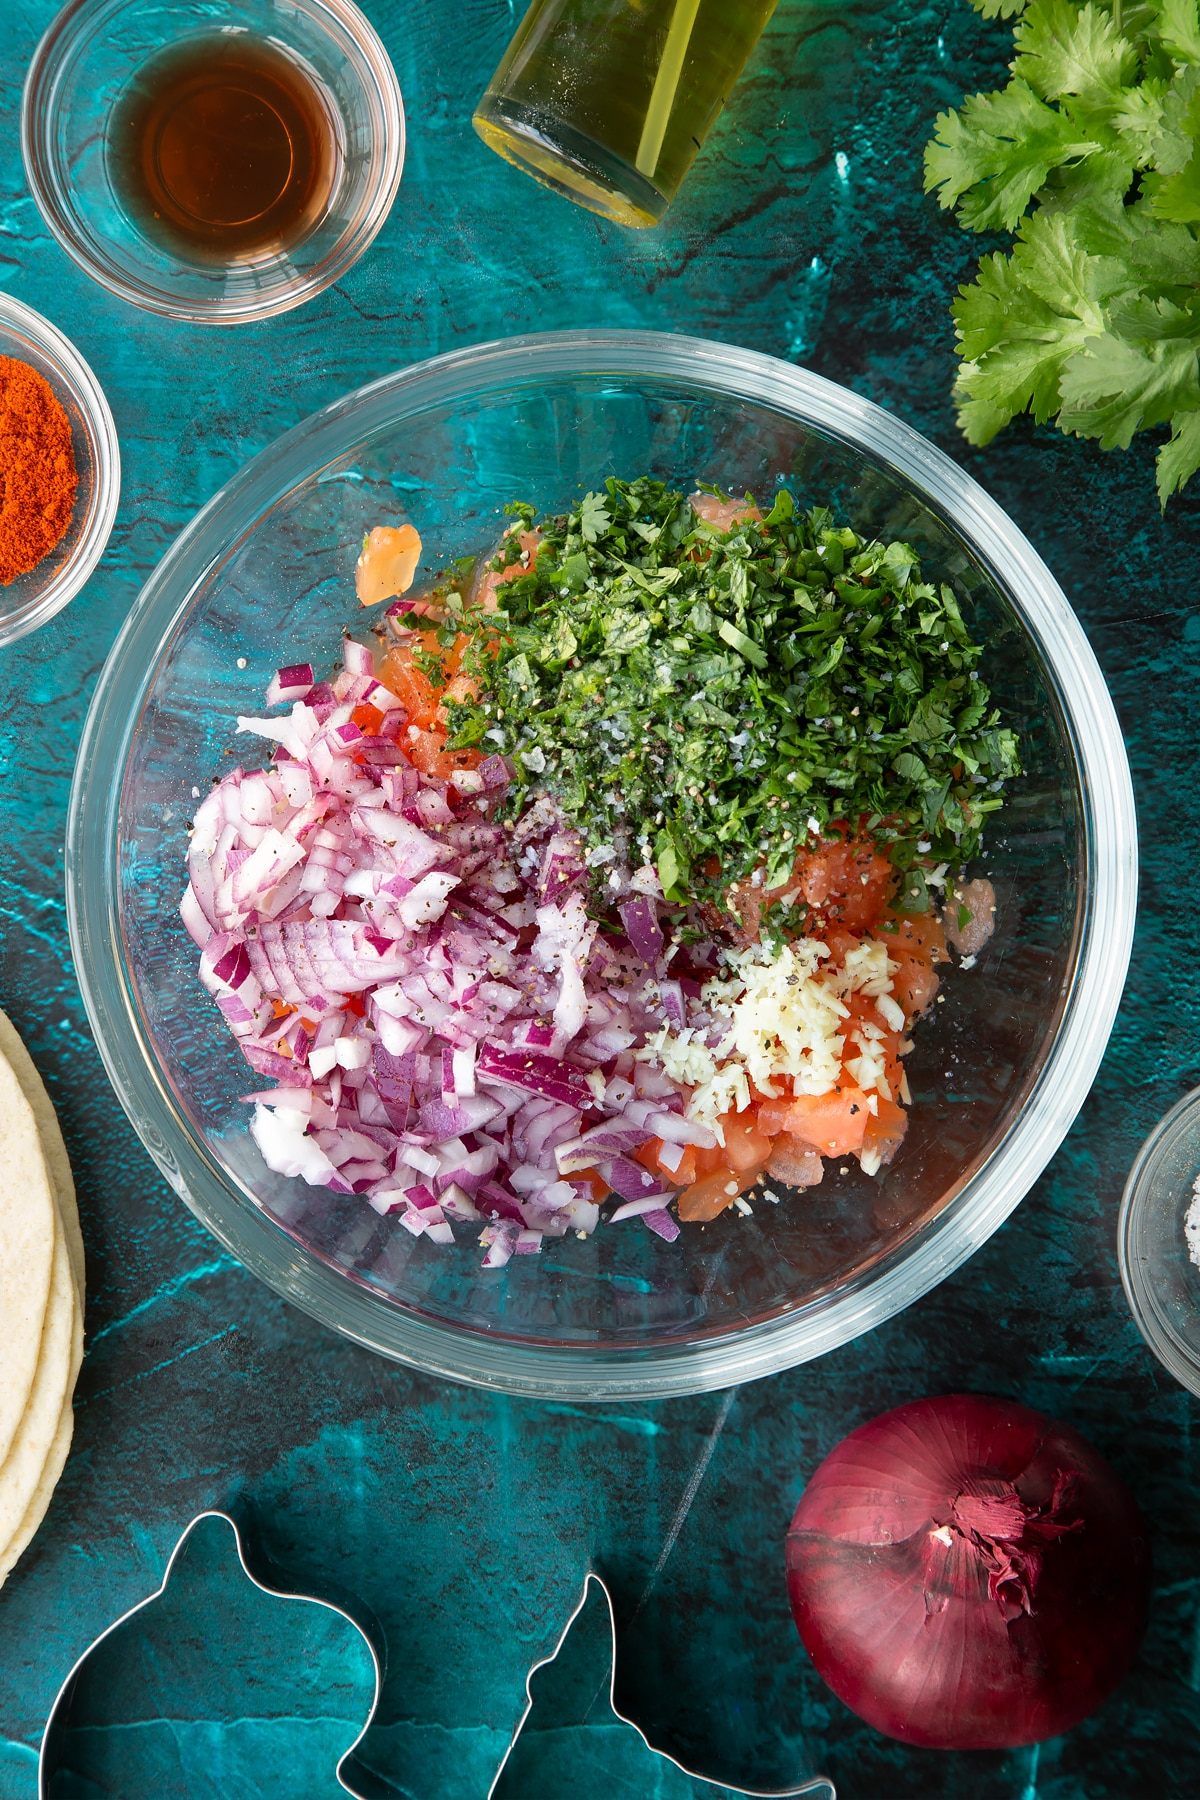 Chopped tomatoes, red onion, coriander, garlic, red wine vinegar and lime juice in a glass bowl